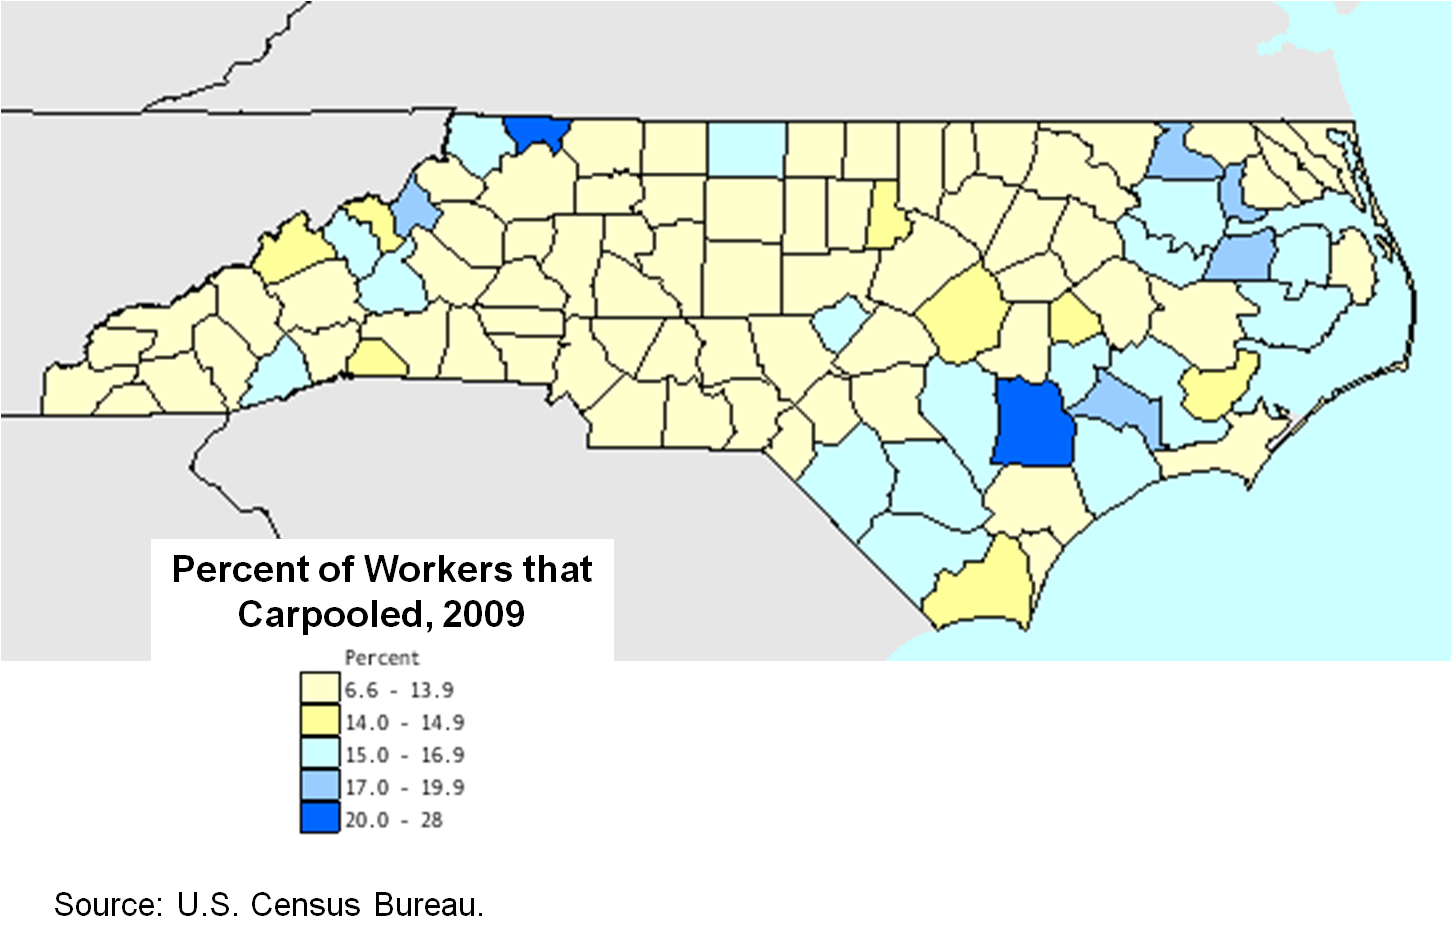 Carpooled to work by county, 2009